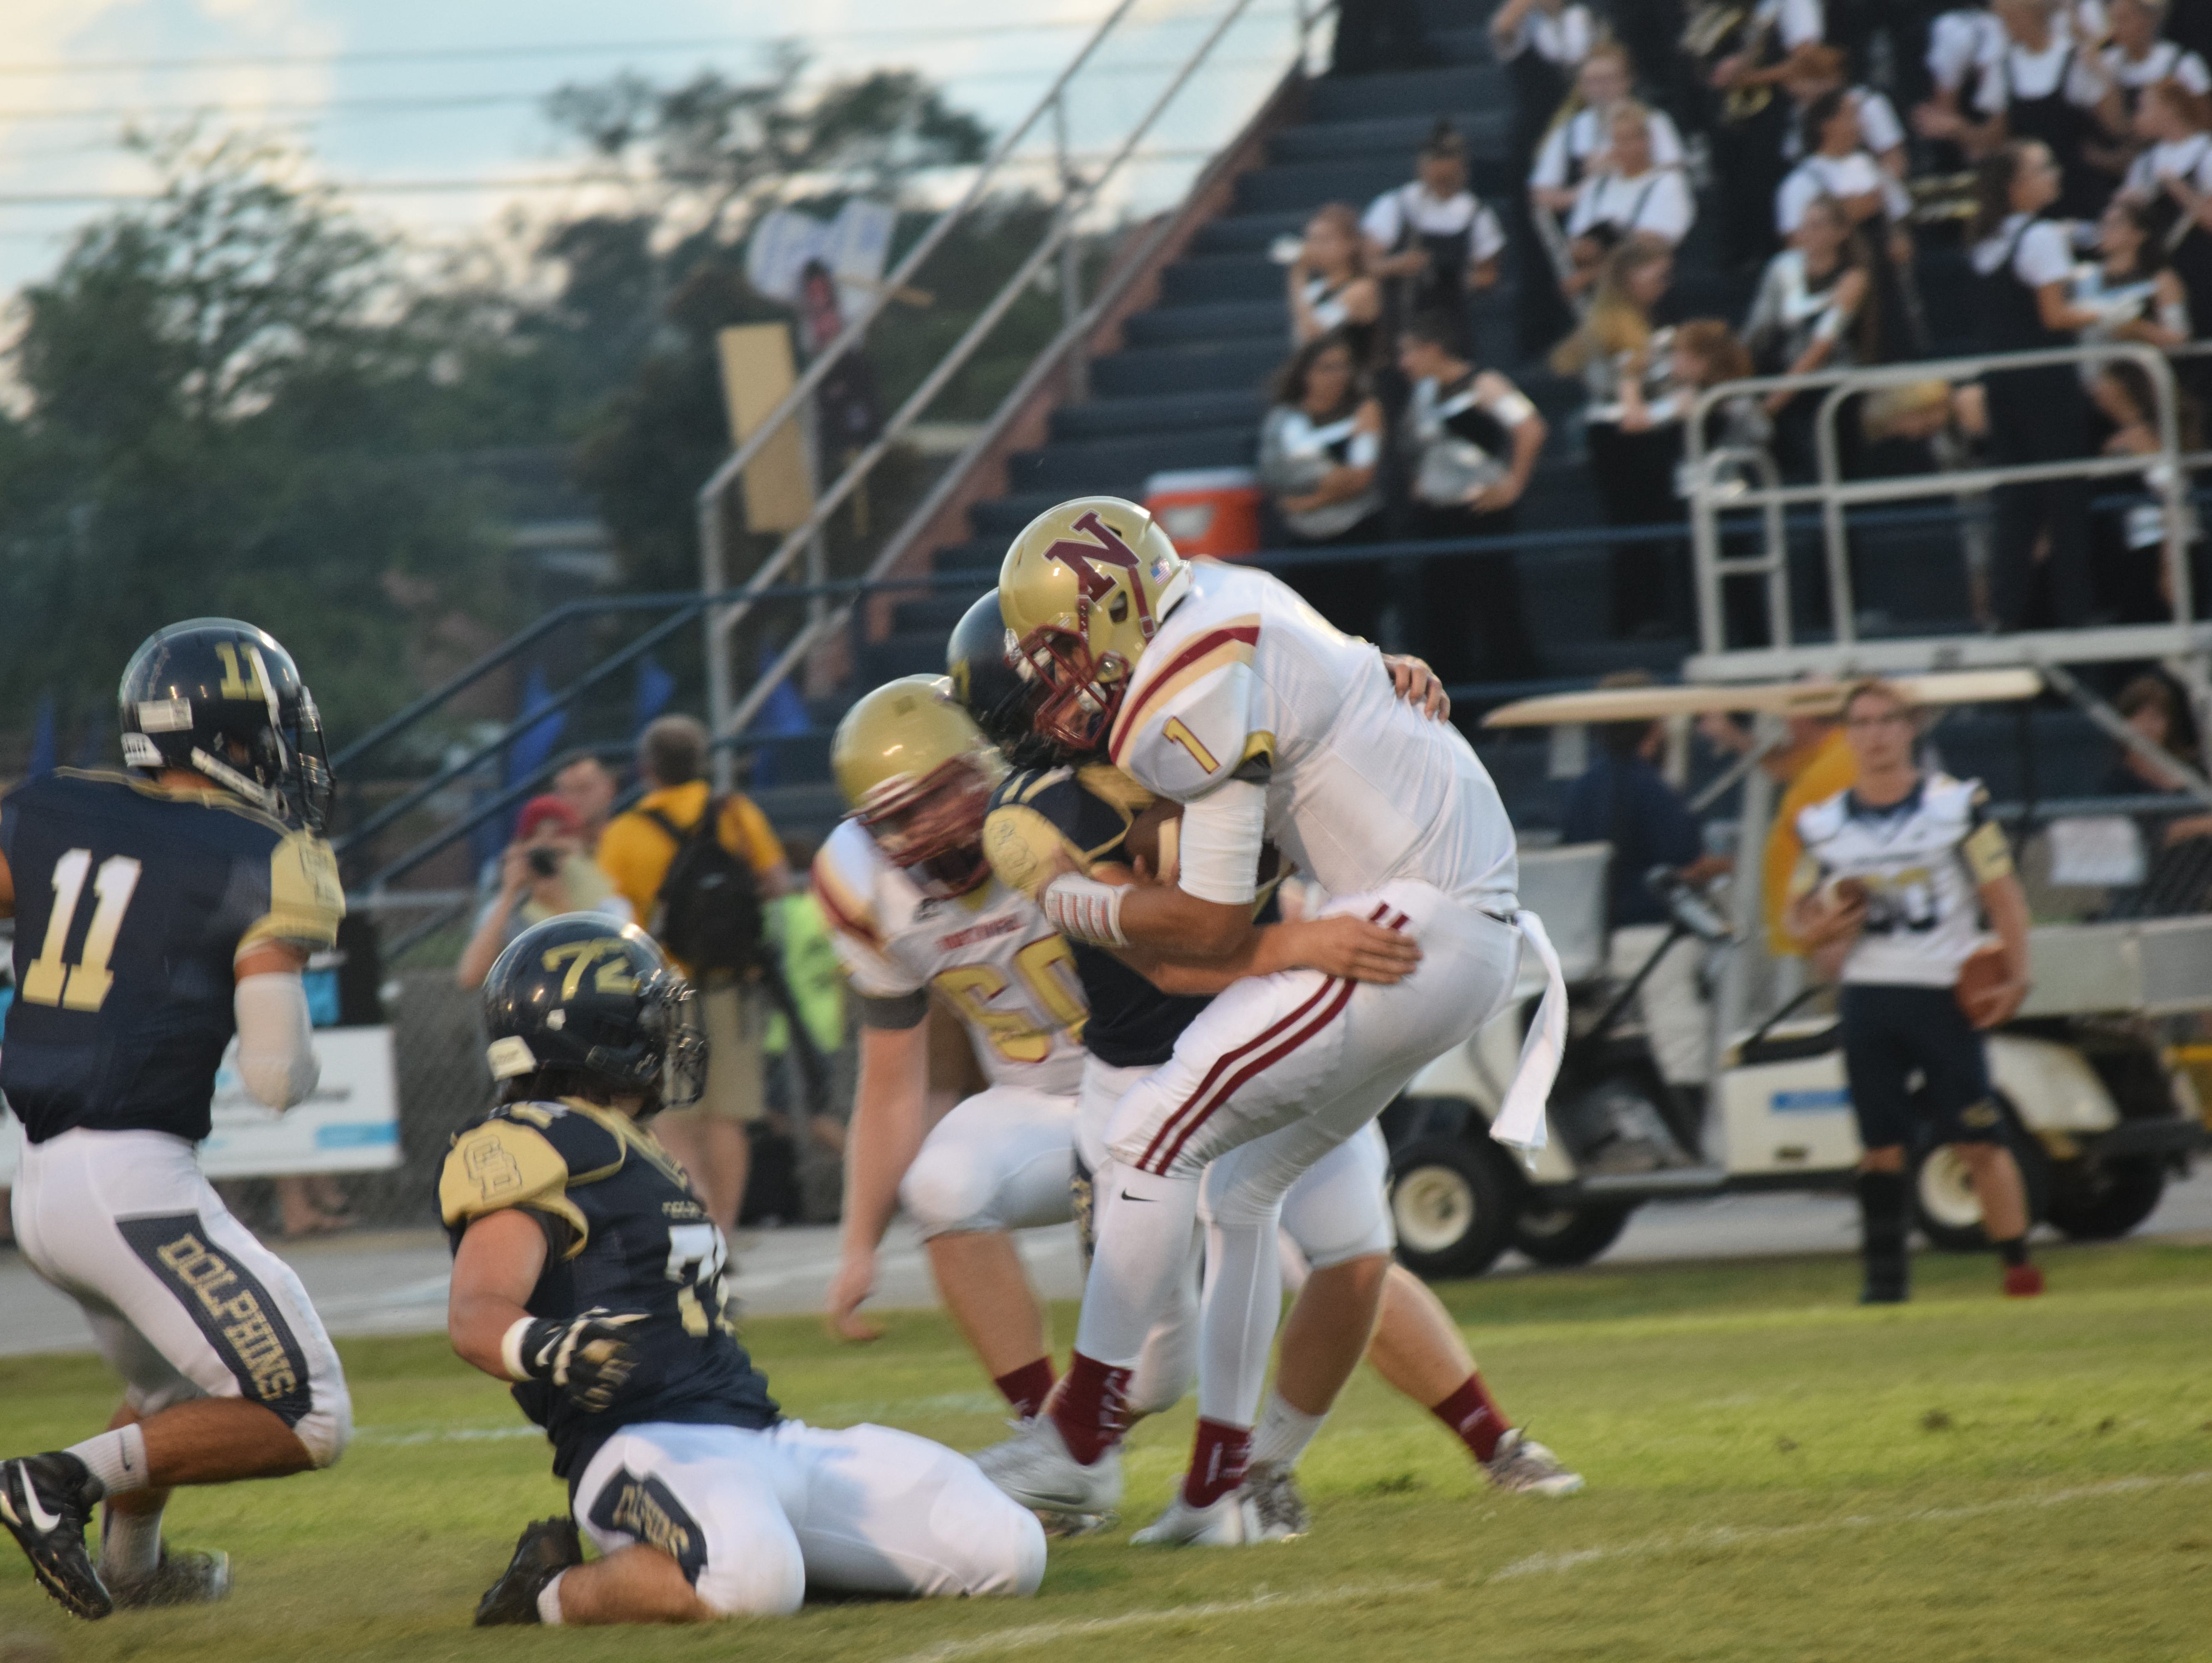 Gulf Breeze linebacker Will Sawarynski brings down Northview quarterback Luke Ward on a first-quarter sack Friday night in the Dolphins' 42-0 win against the Chiefs. .